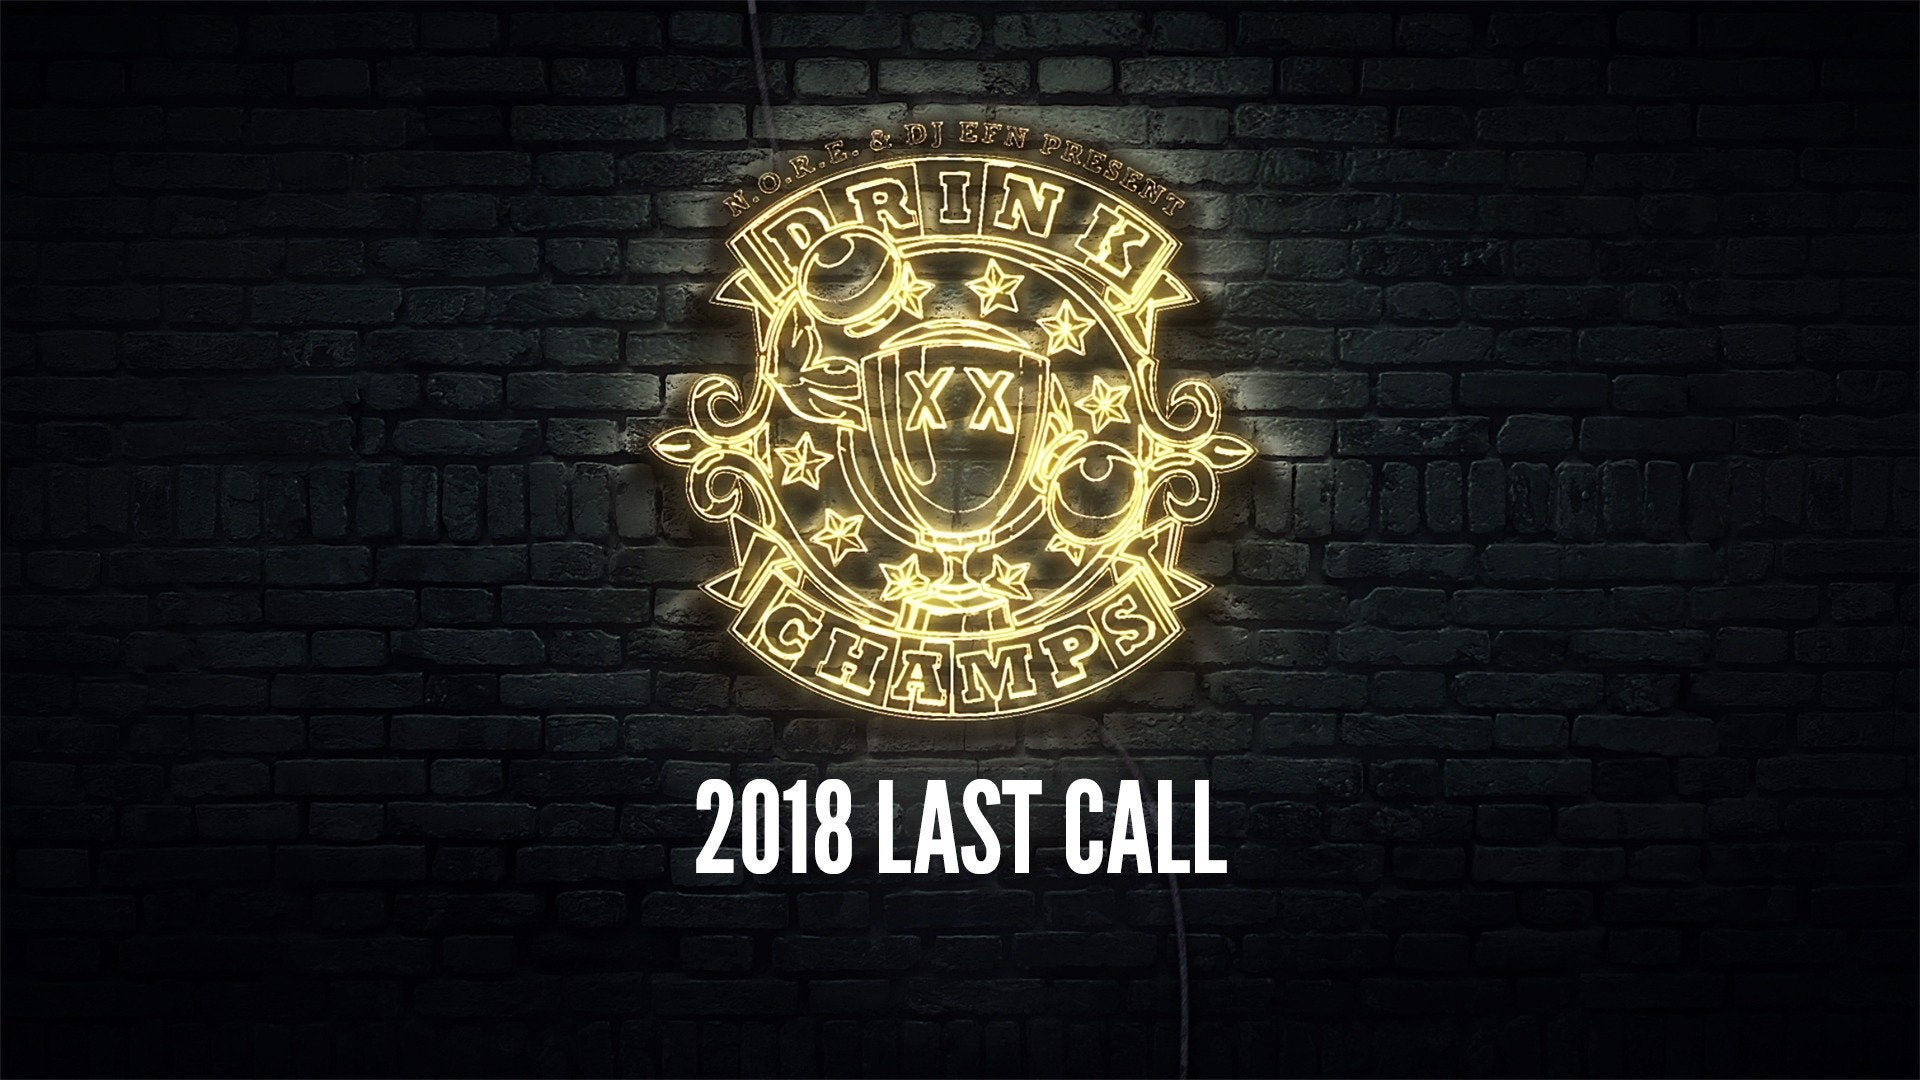 Drink Champs: 2018 Last Call